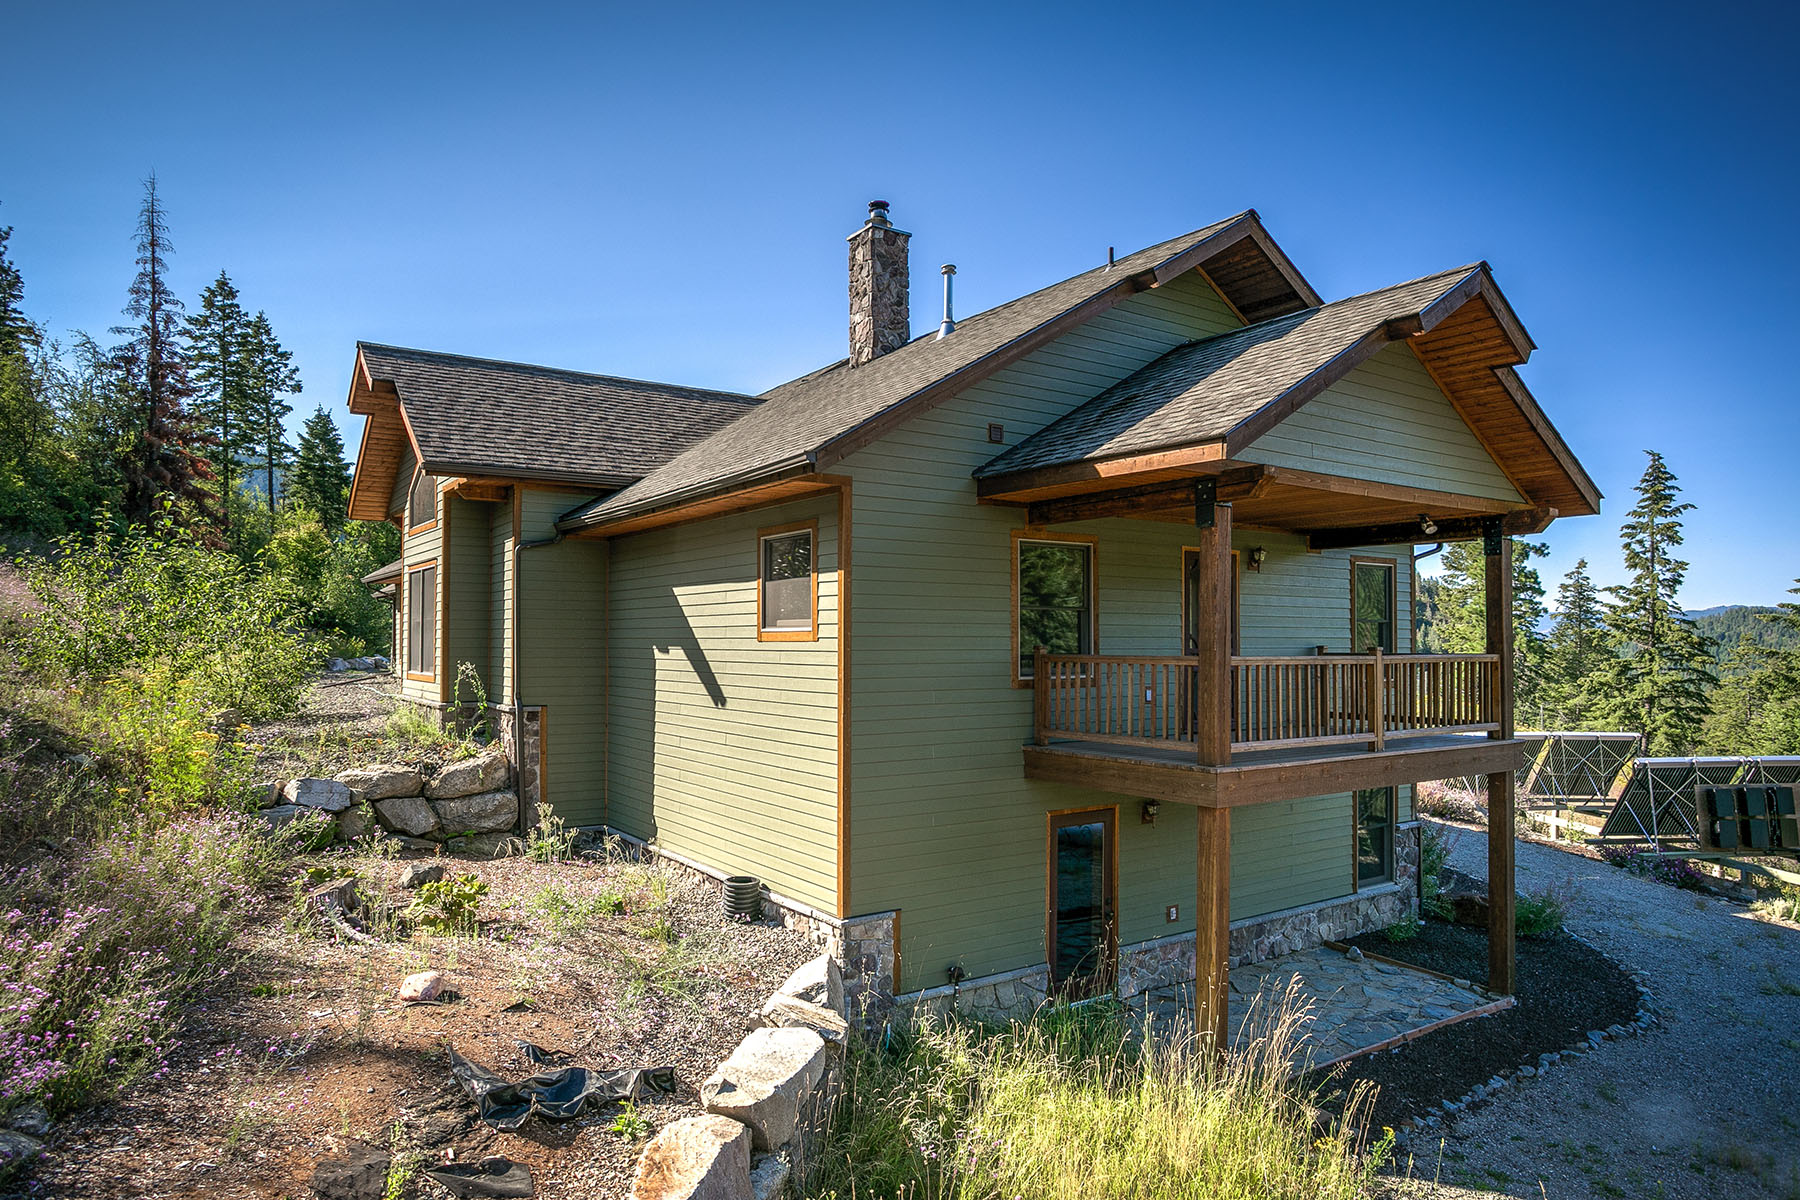 Villa per Vendita alle ore Luxurious Wilderness Sanctuary 0 Trout Creek Ranch Rd Sandpoint, Idaho, 83864 Stati Uniti